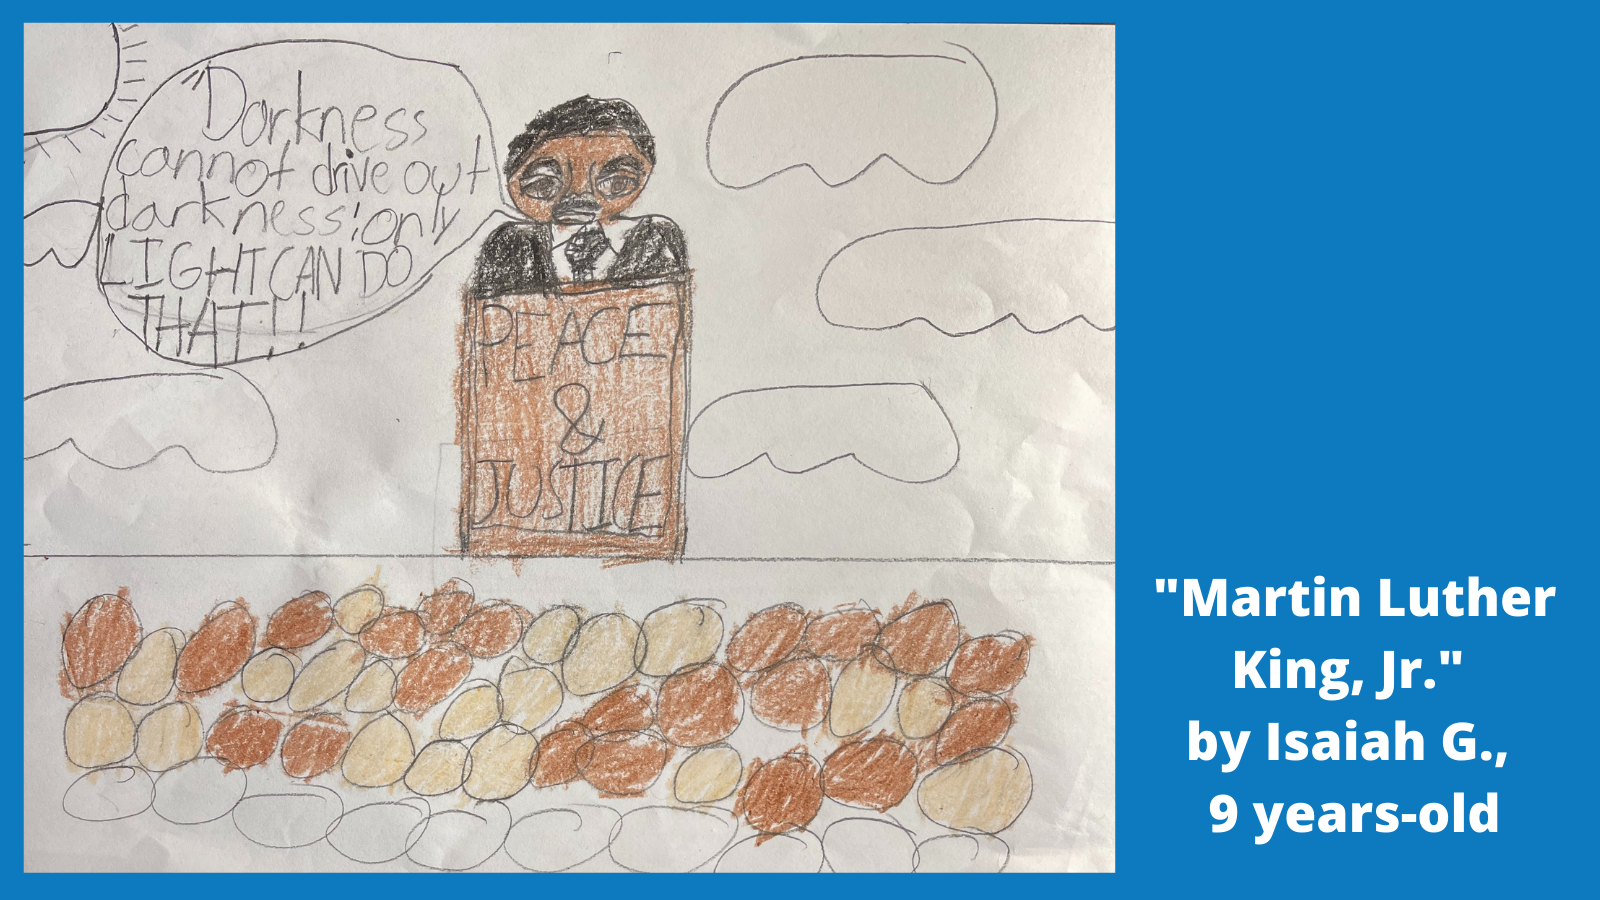 Child's drawing of Martin Luther King Jr.